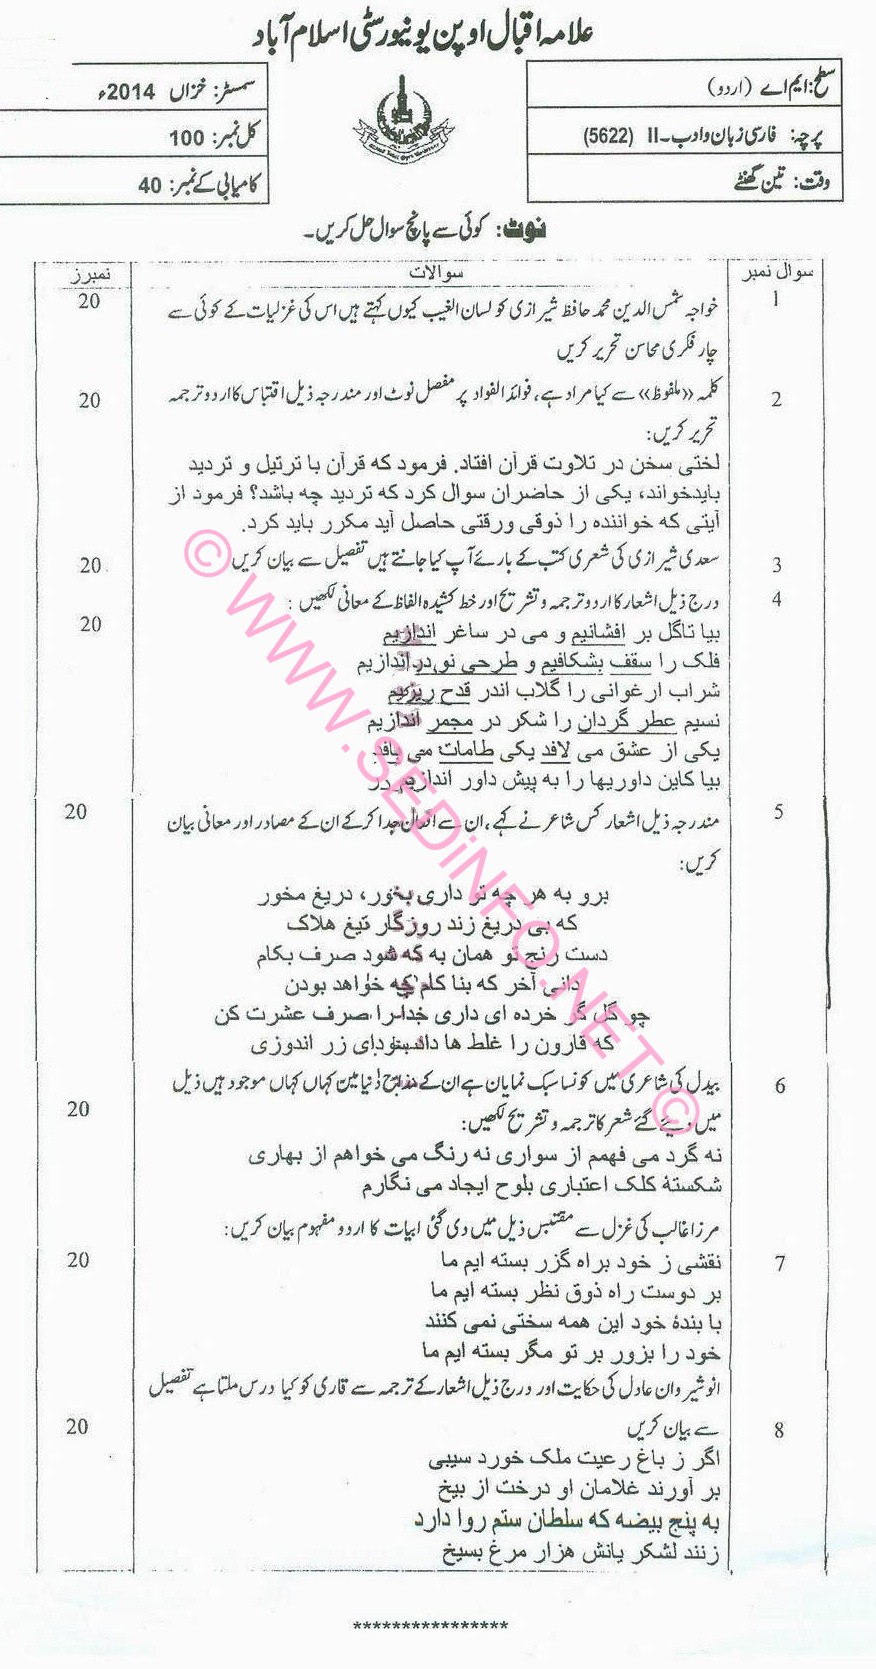 MA Urdu AIOU Code 5622 Past Papers A2014